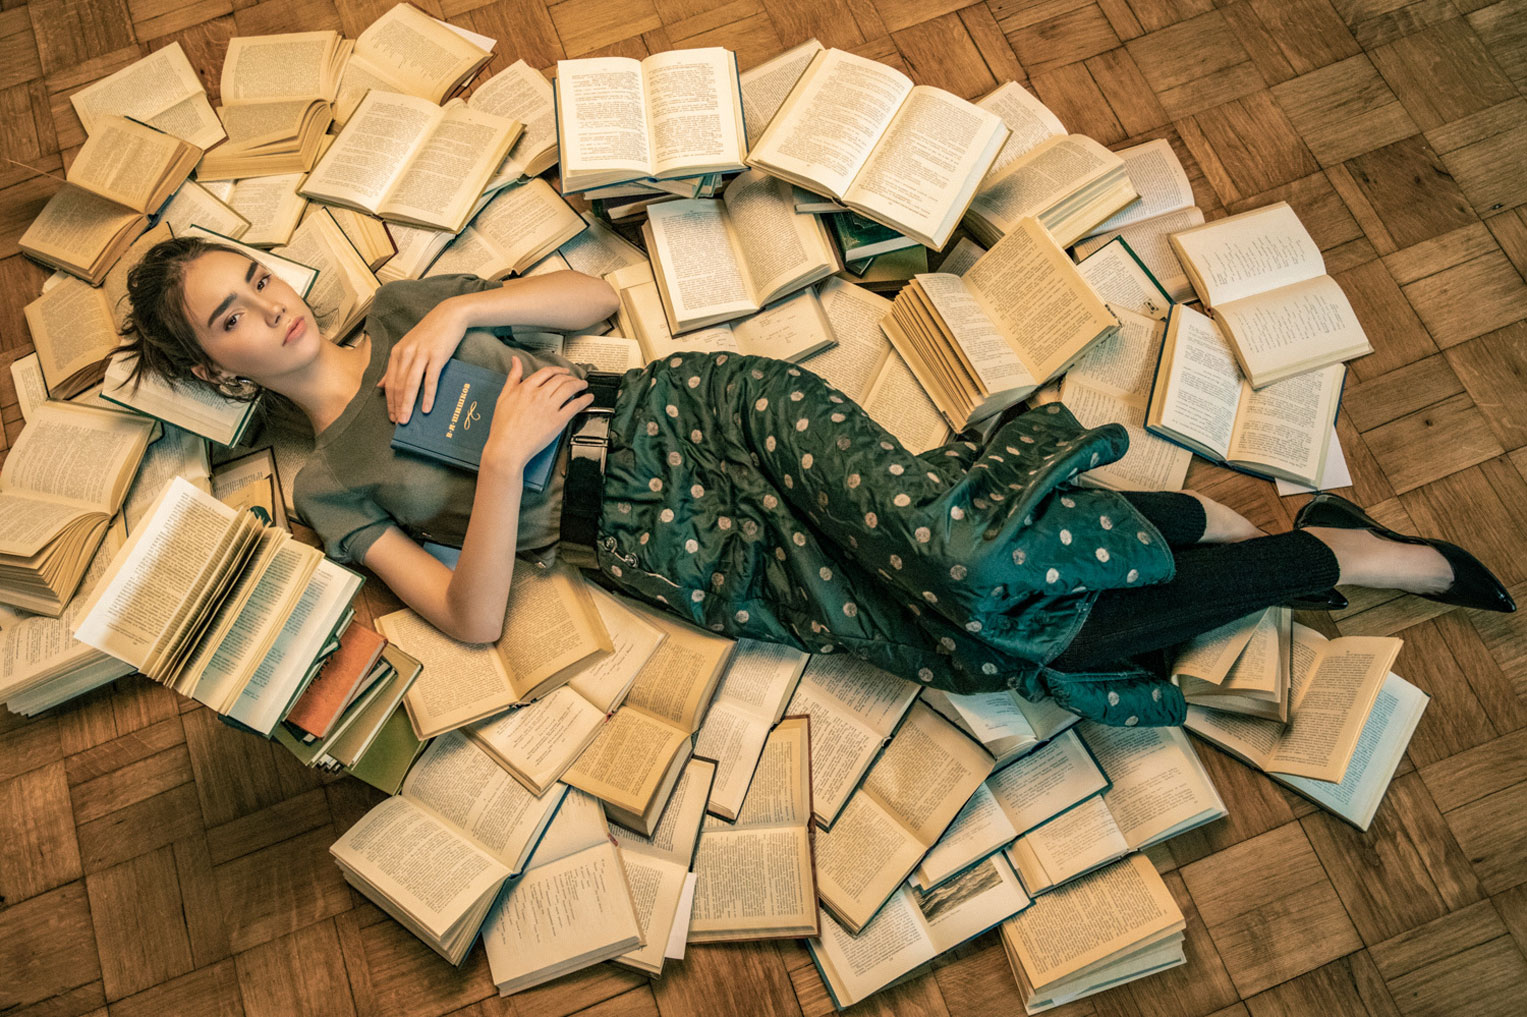 Bookworm / Anna Palaguto by Ilya Blinov